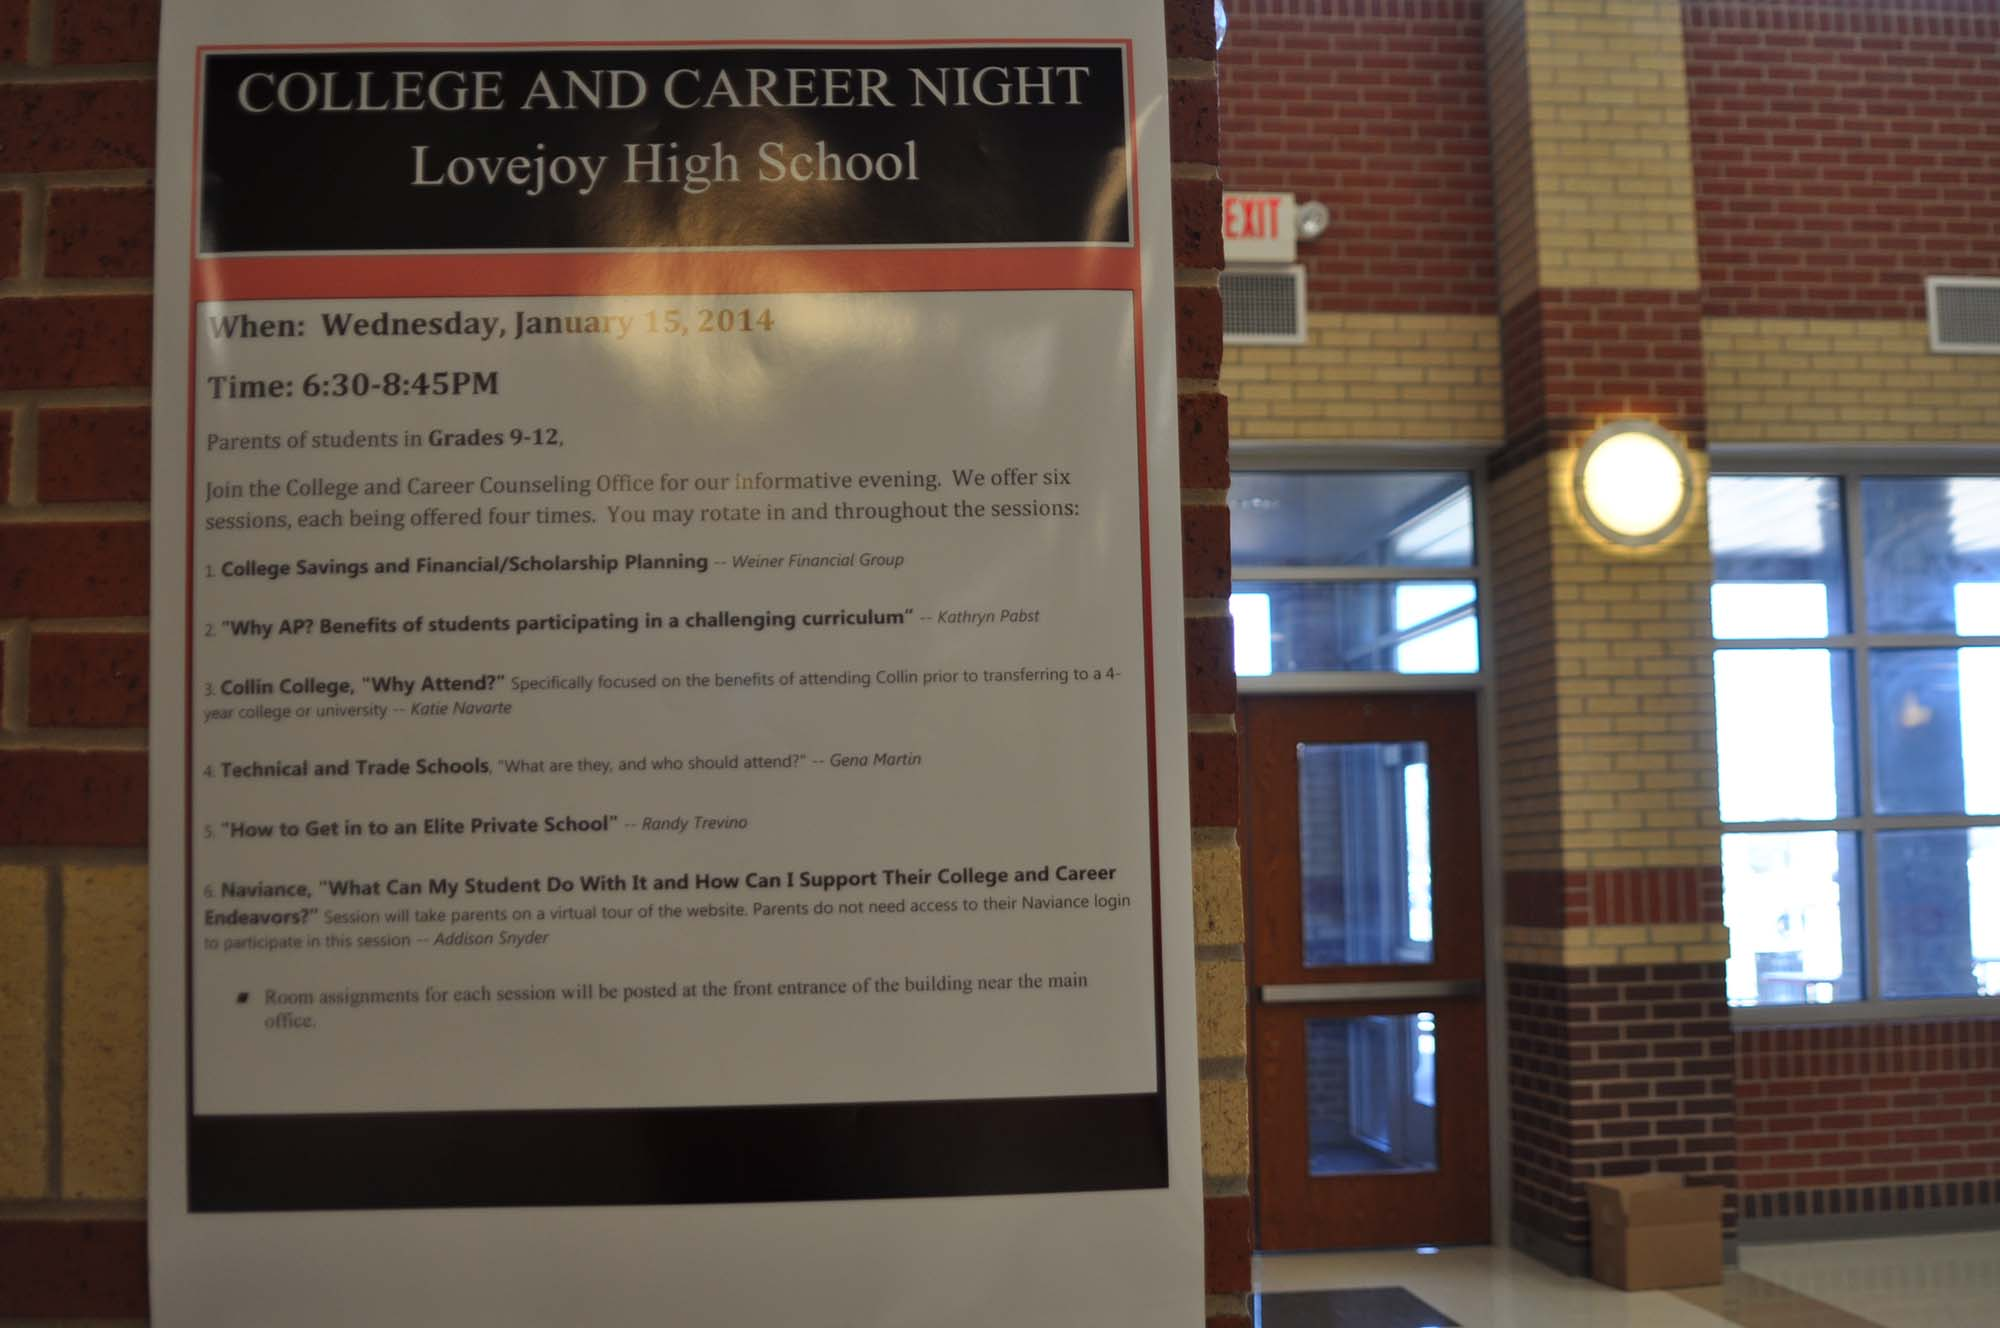 The college and career counselors will be holding the first annual college and career night on Wednesday, January 15.